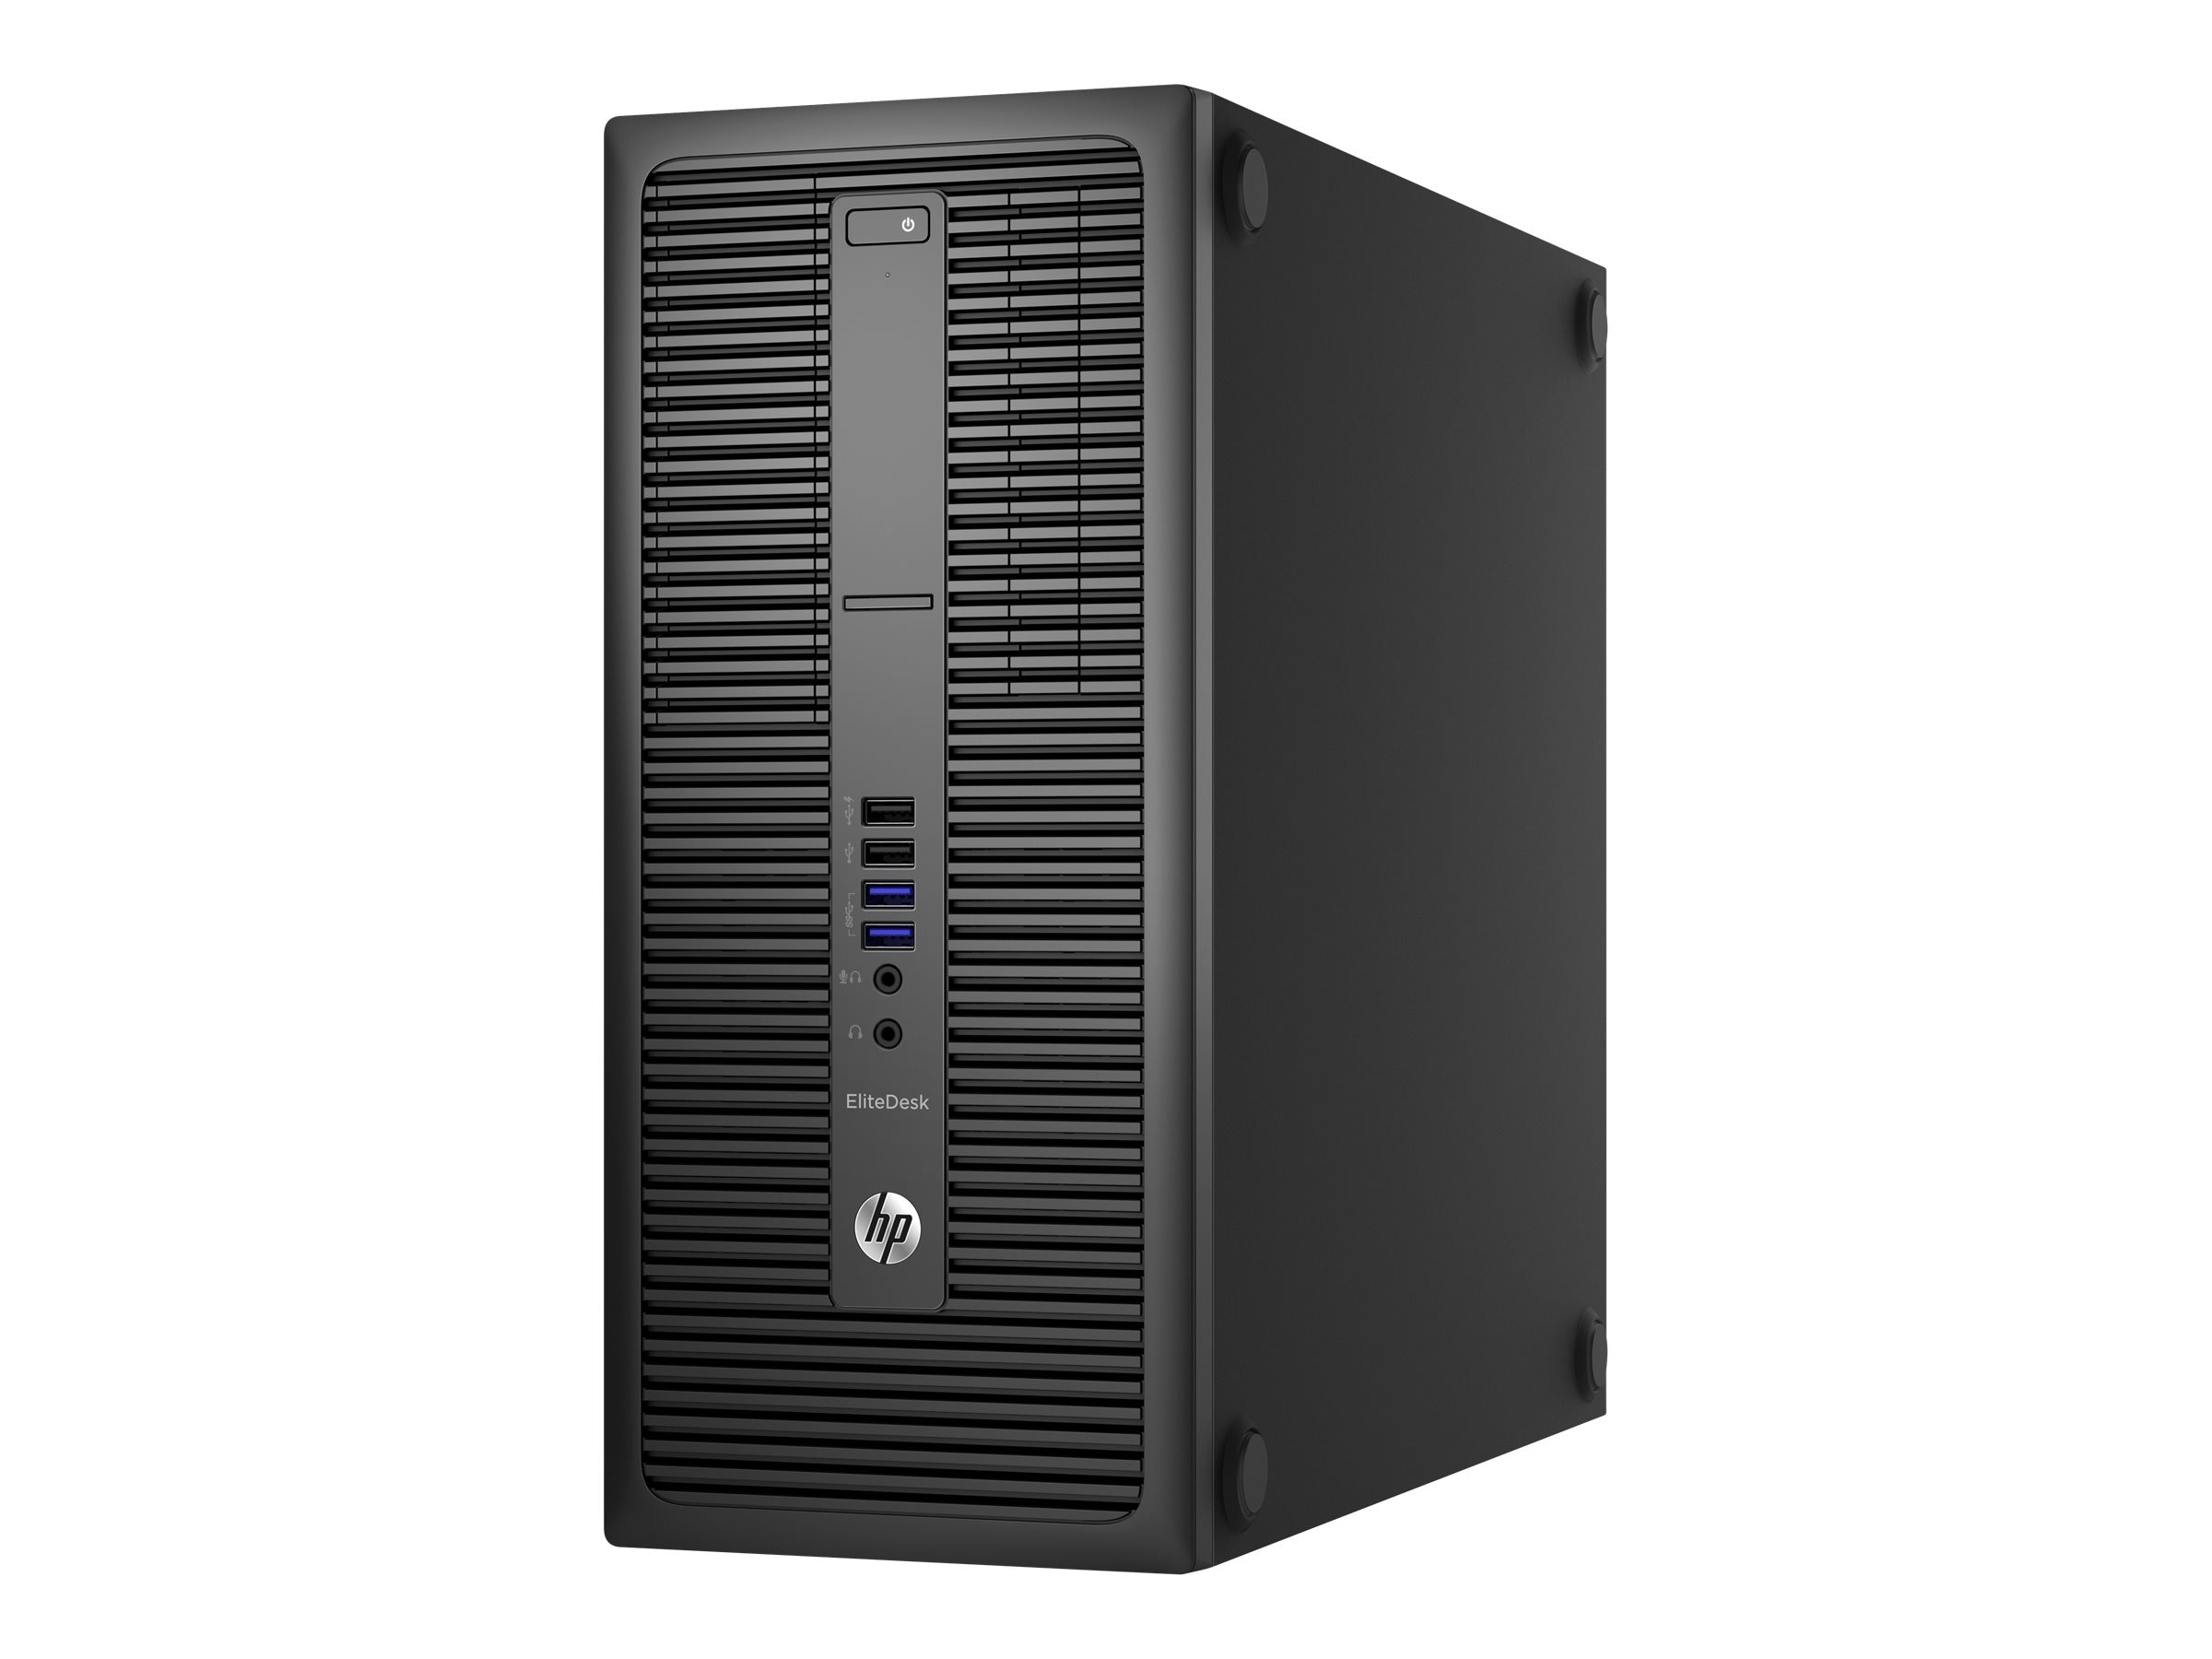 HP EliteDesk 800 G2 3.4GHz Core i7 8GB RAM 256GB hard drive, T4L58UT#ABA, 30729951, Desktops